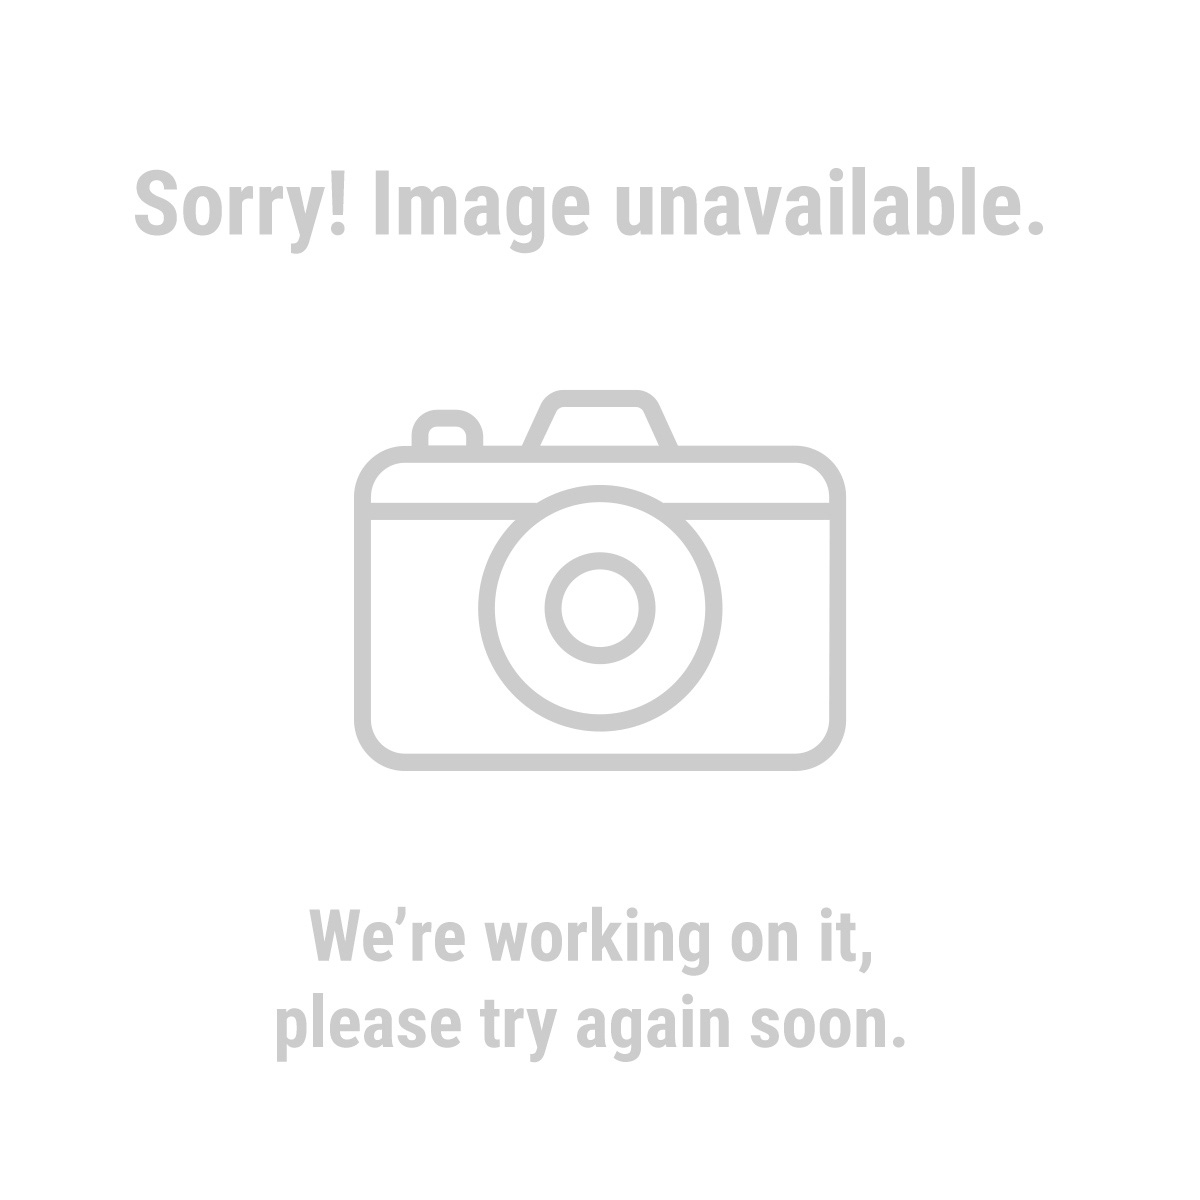 Chicago Electric Welding Systems 69029 225 Amp Arc Welder